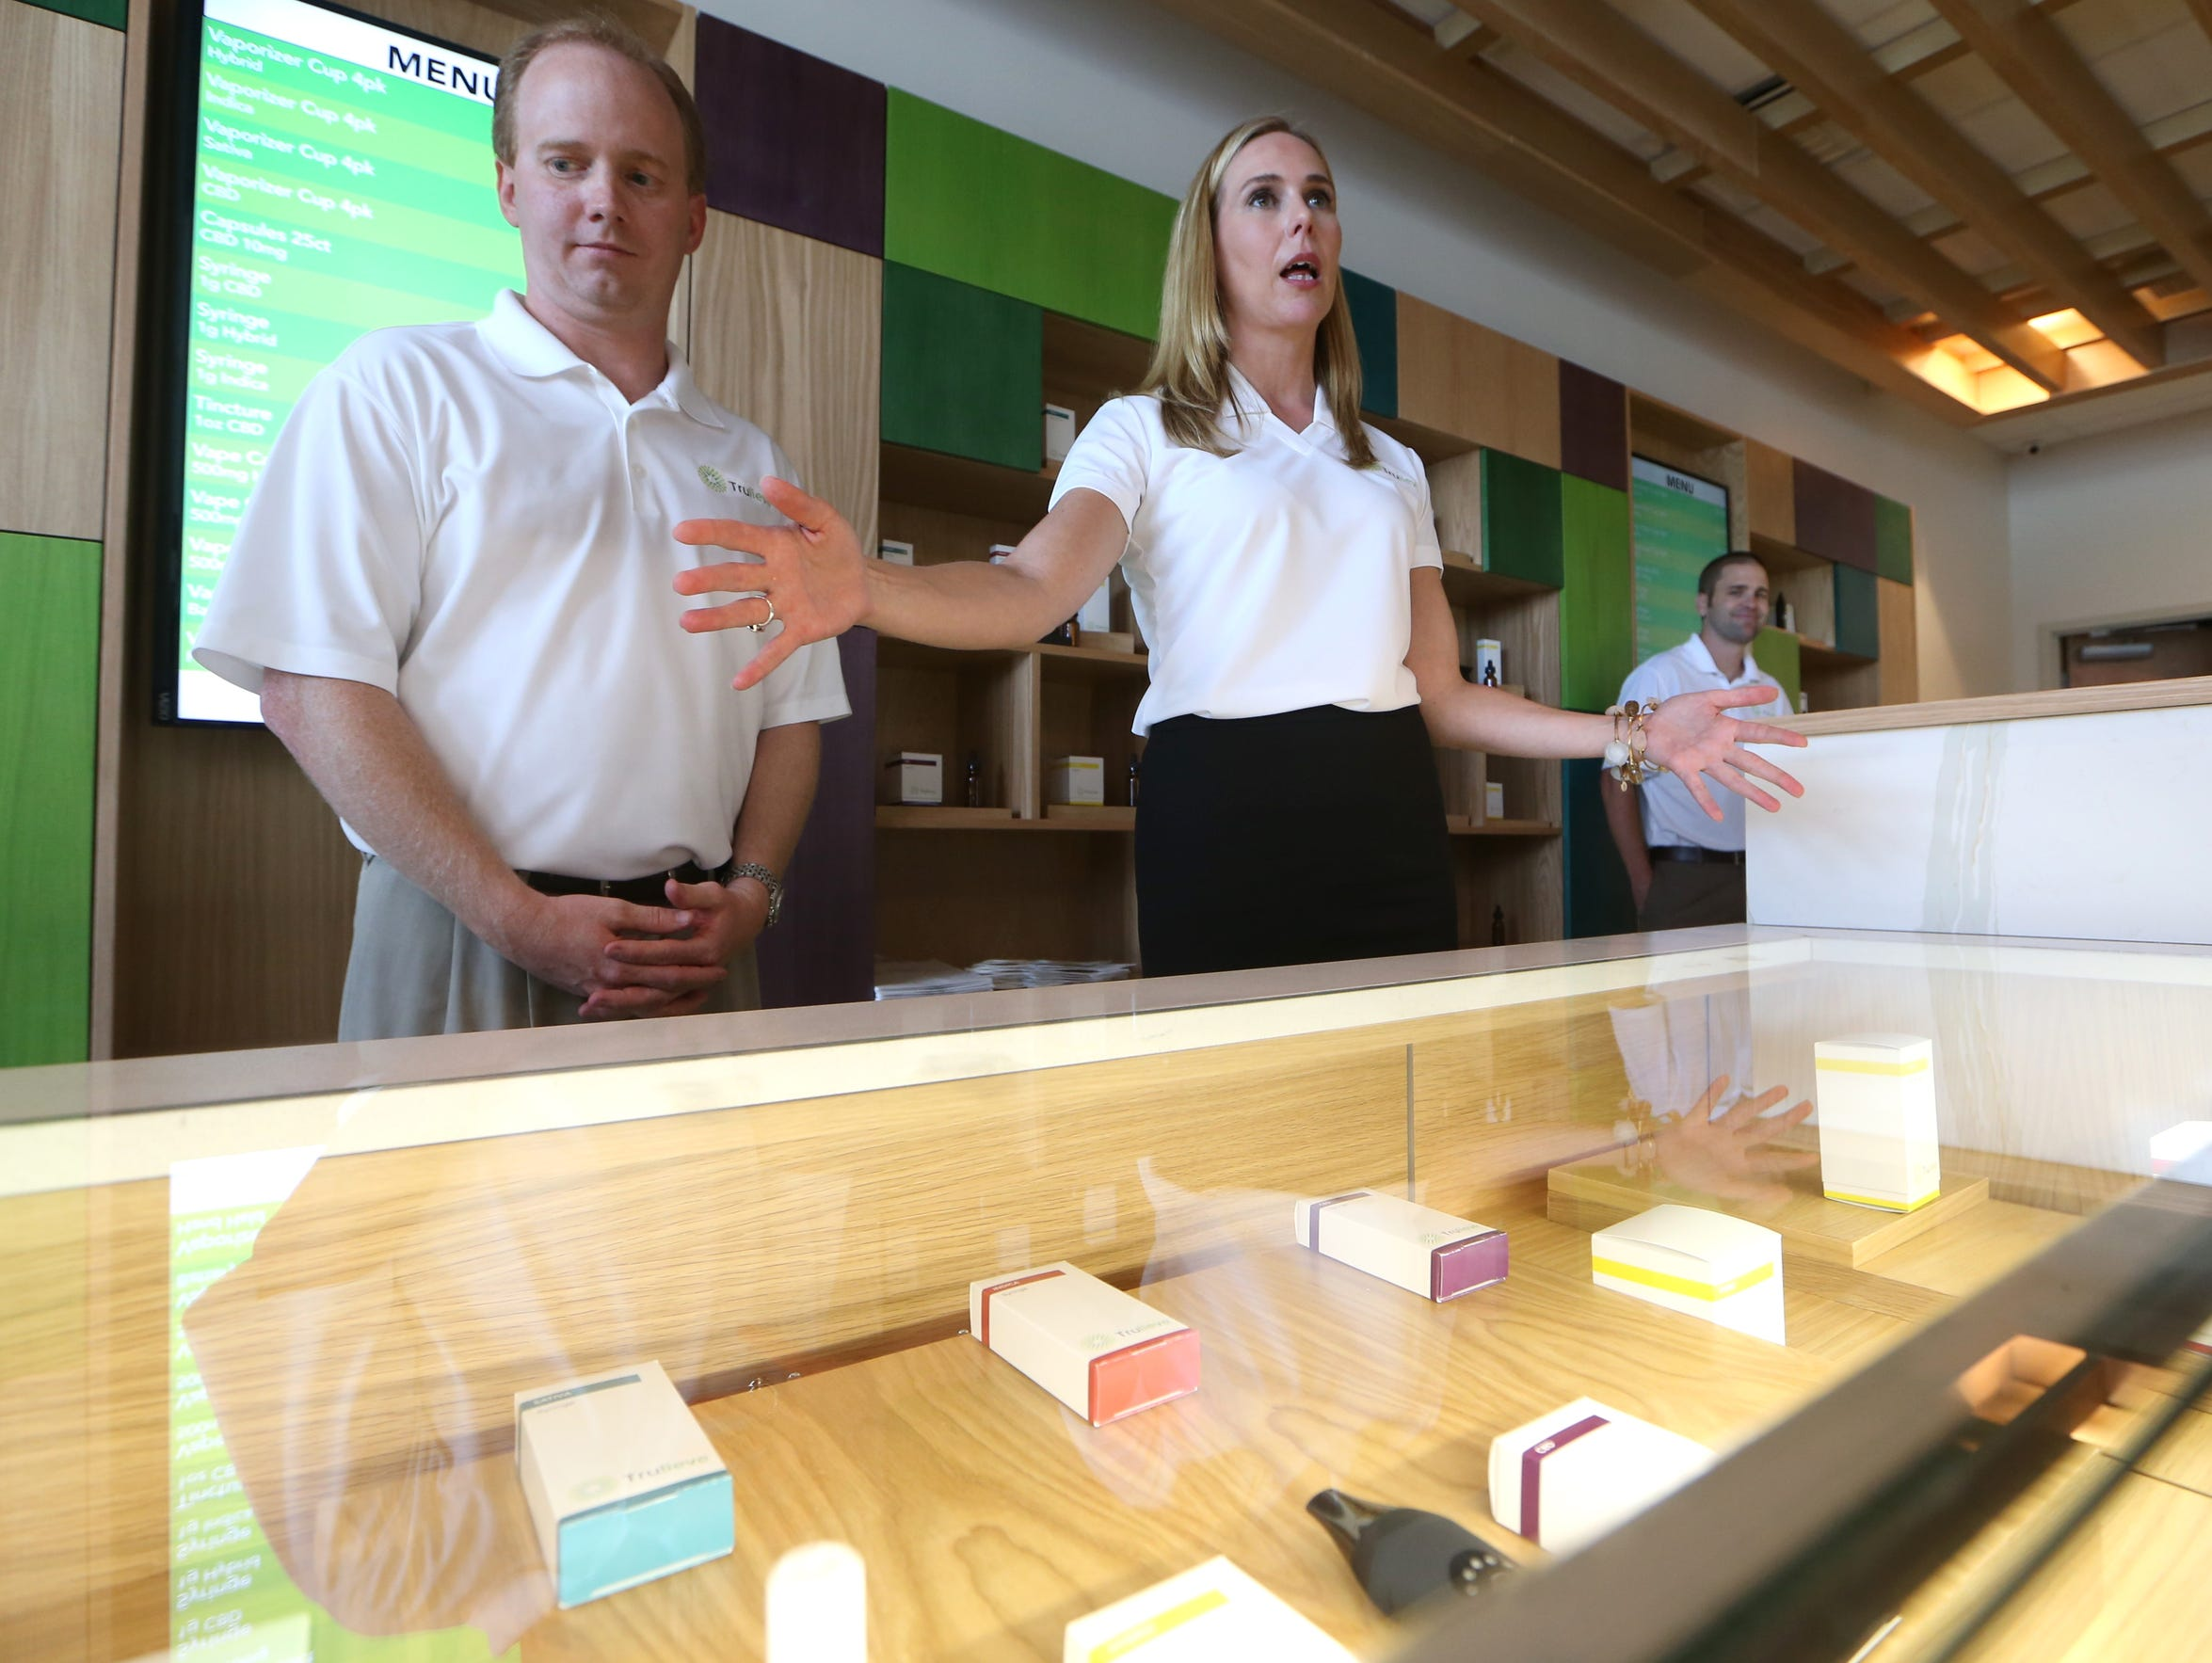 Trulieve CEO Kim Rivers and COO Jason Pernell stand